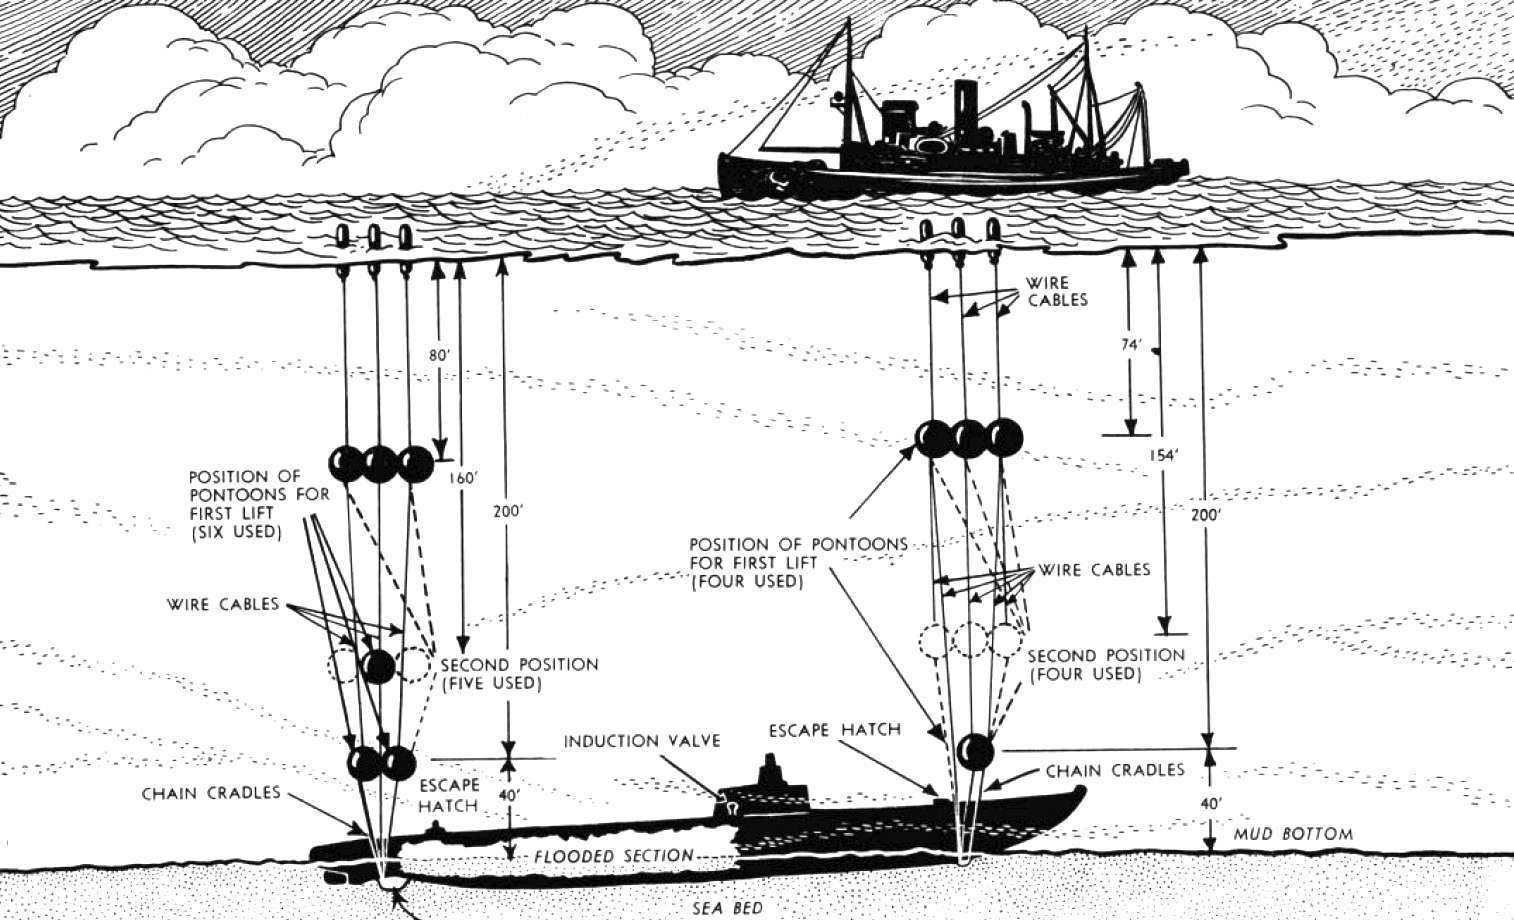 File Diagram Of Salvage Gear Used To Raise Uss Squalus Ss 192 In